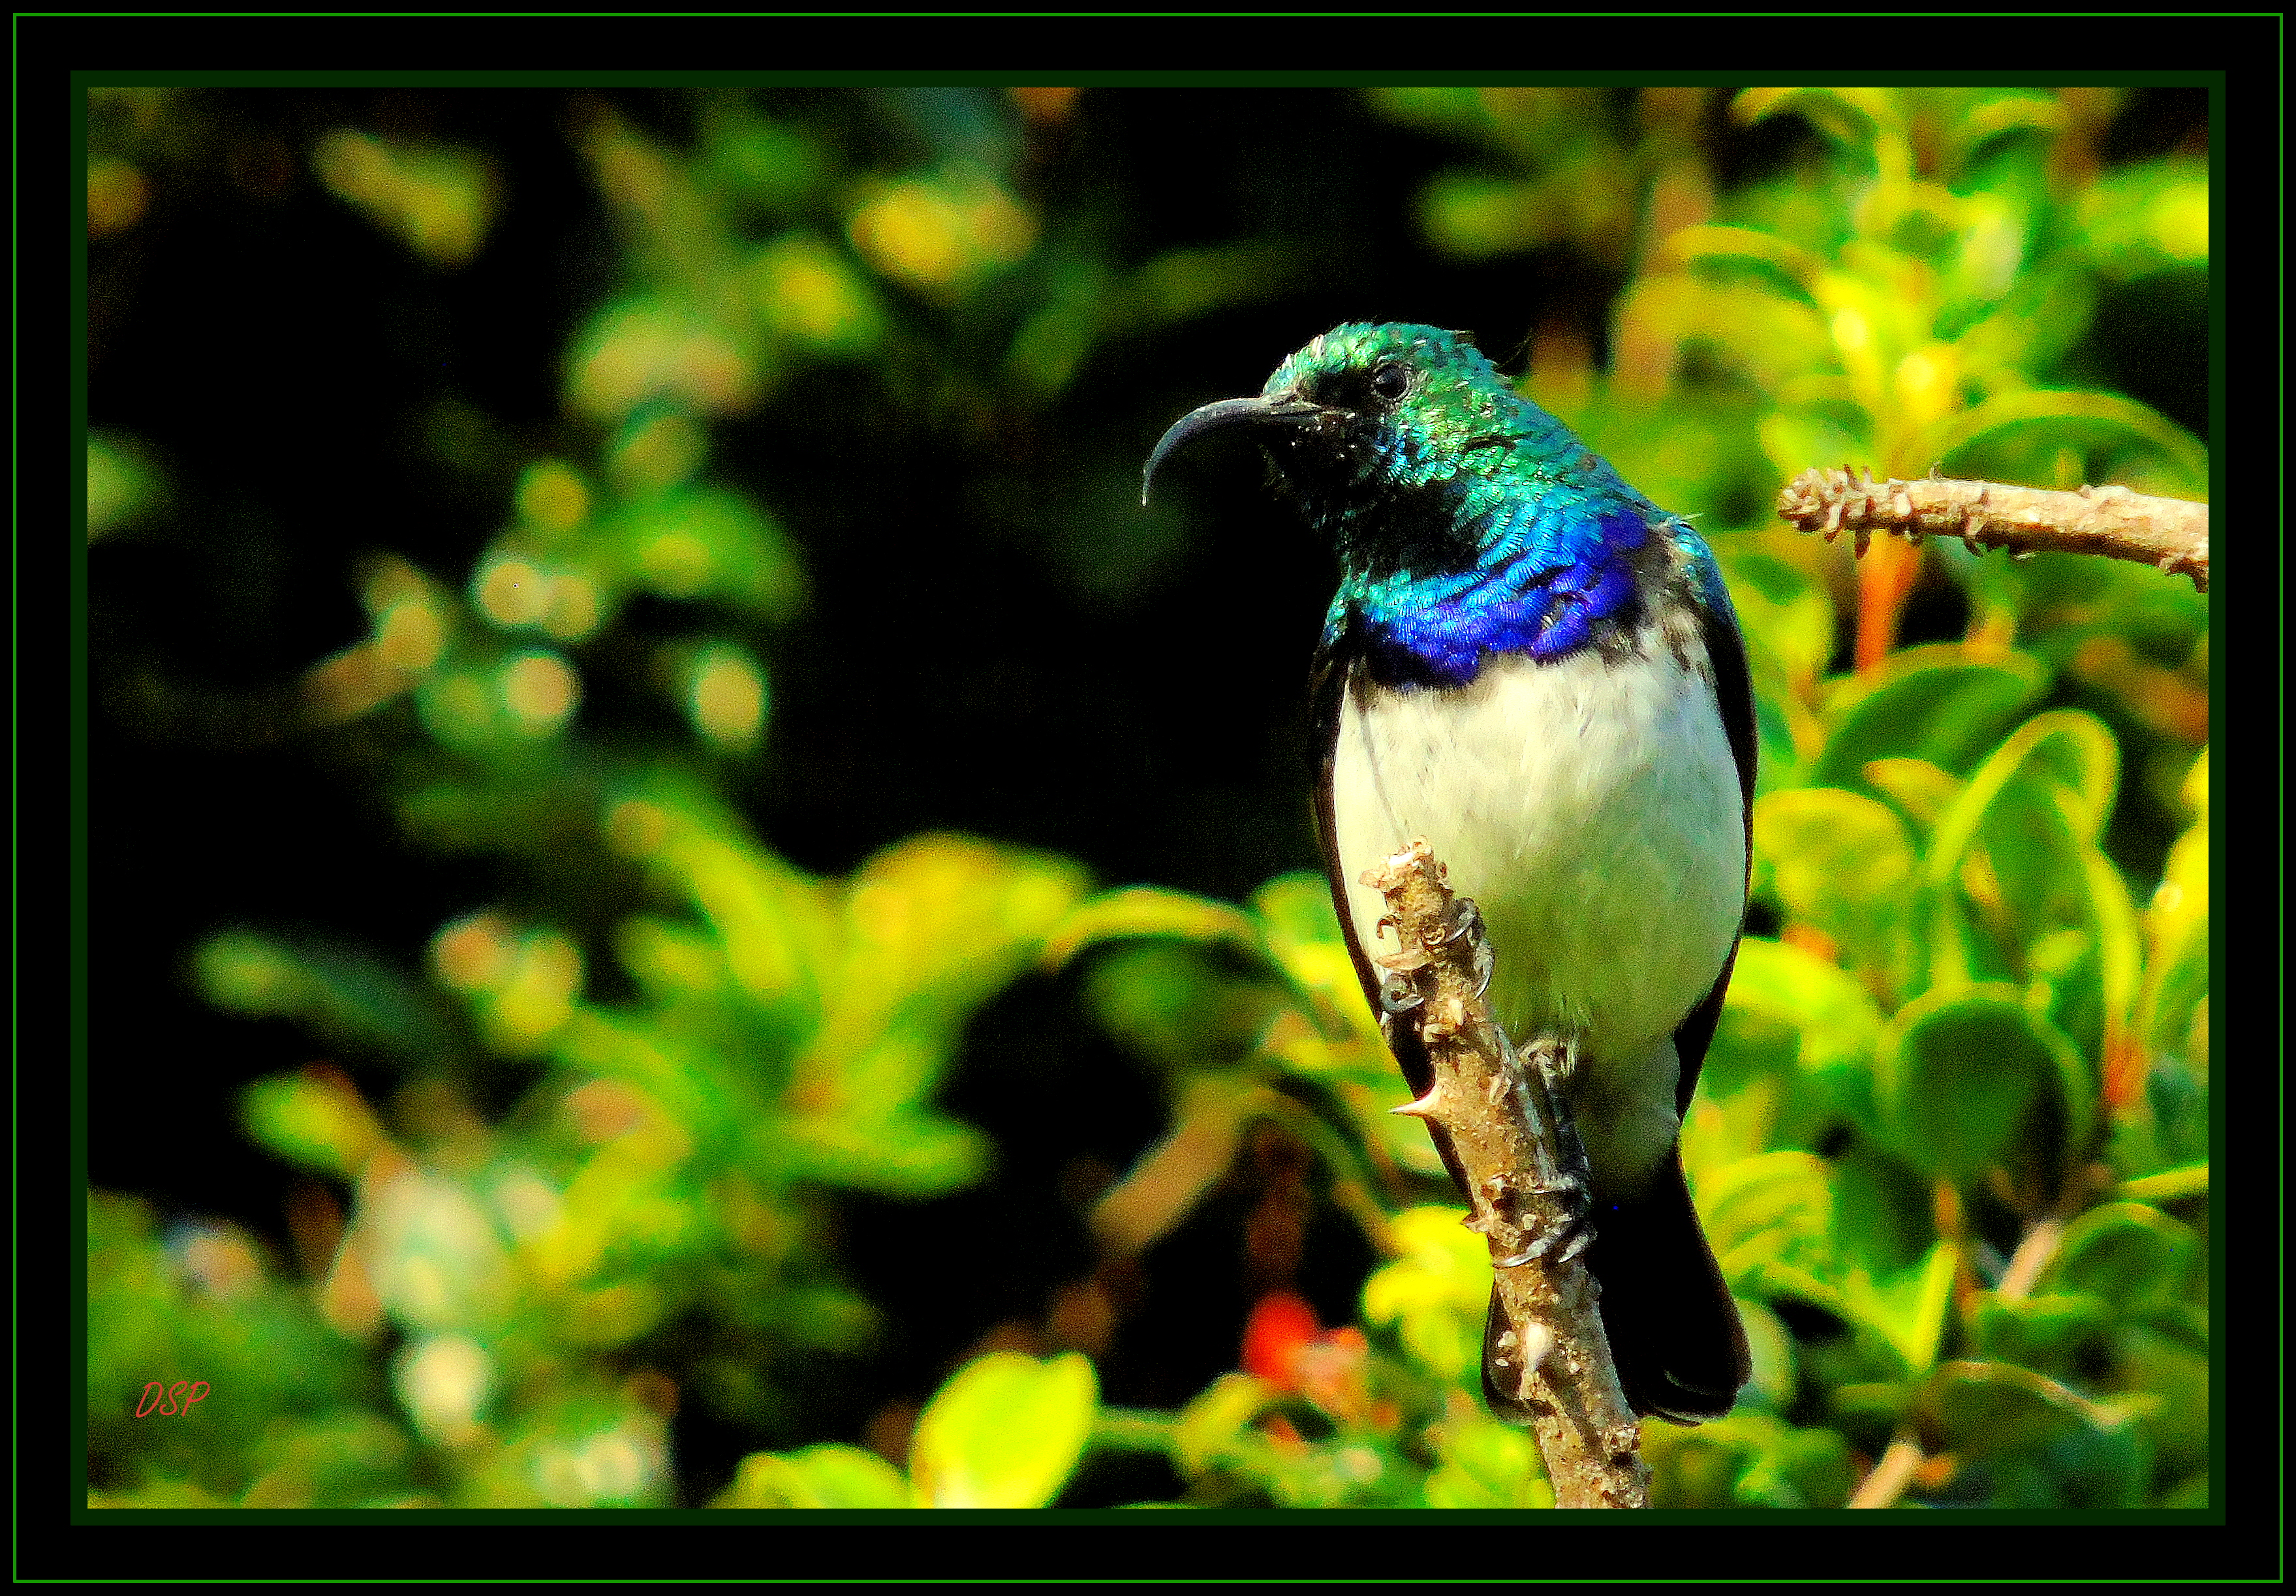 White Bellied Sunbird on Coral Tree.